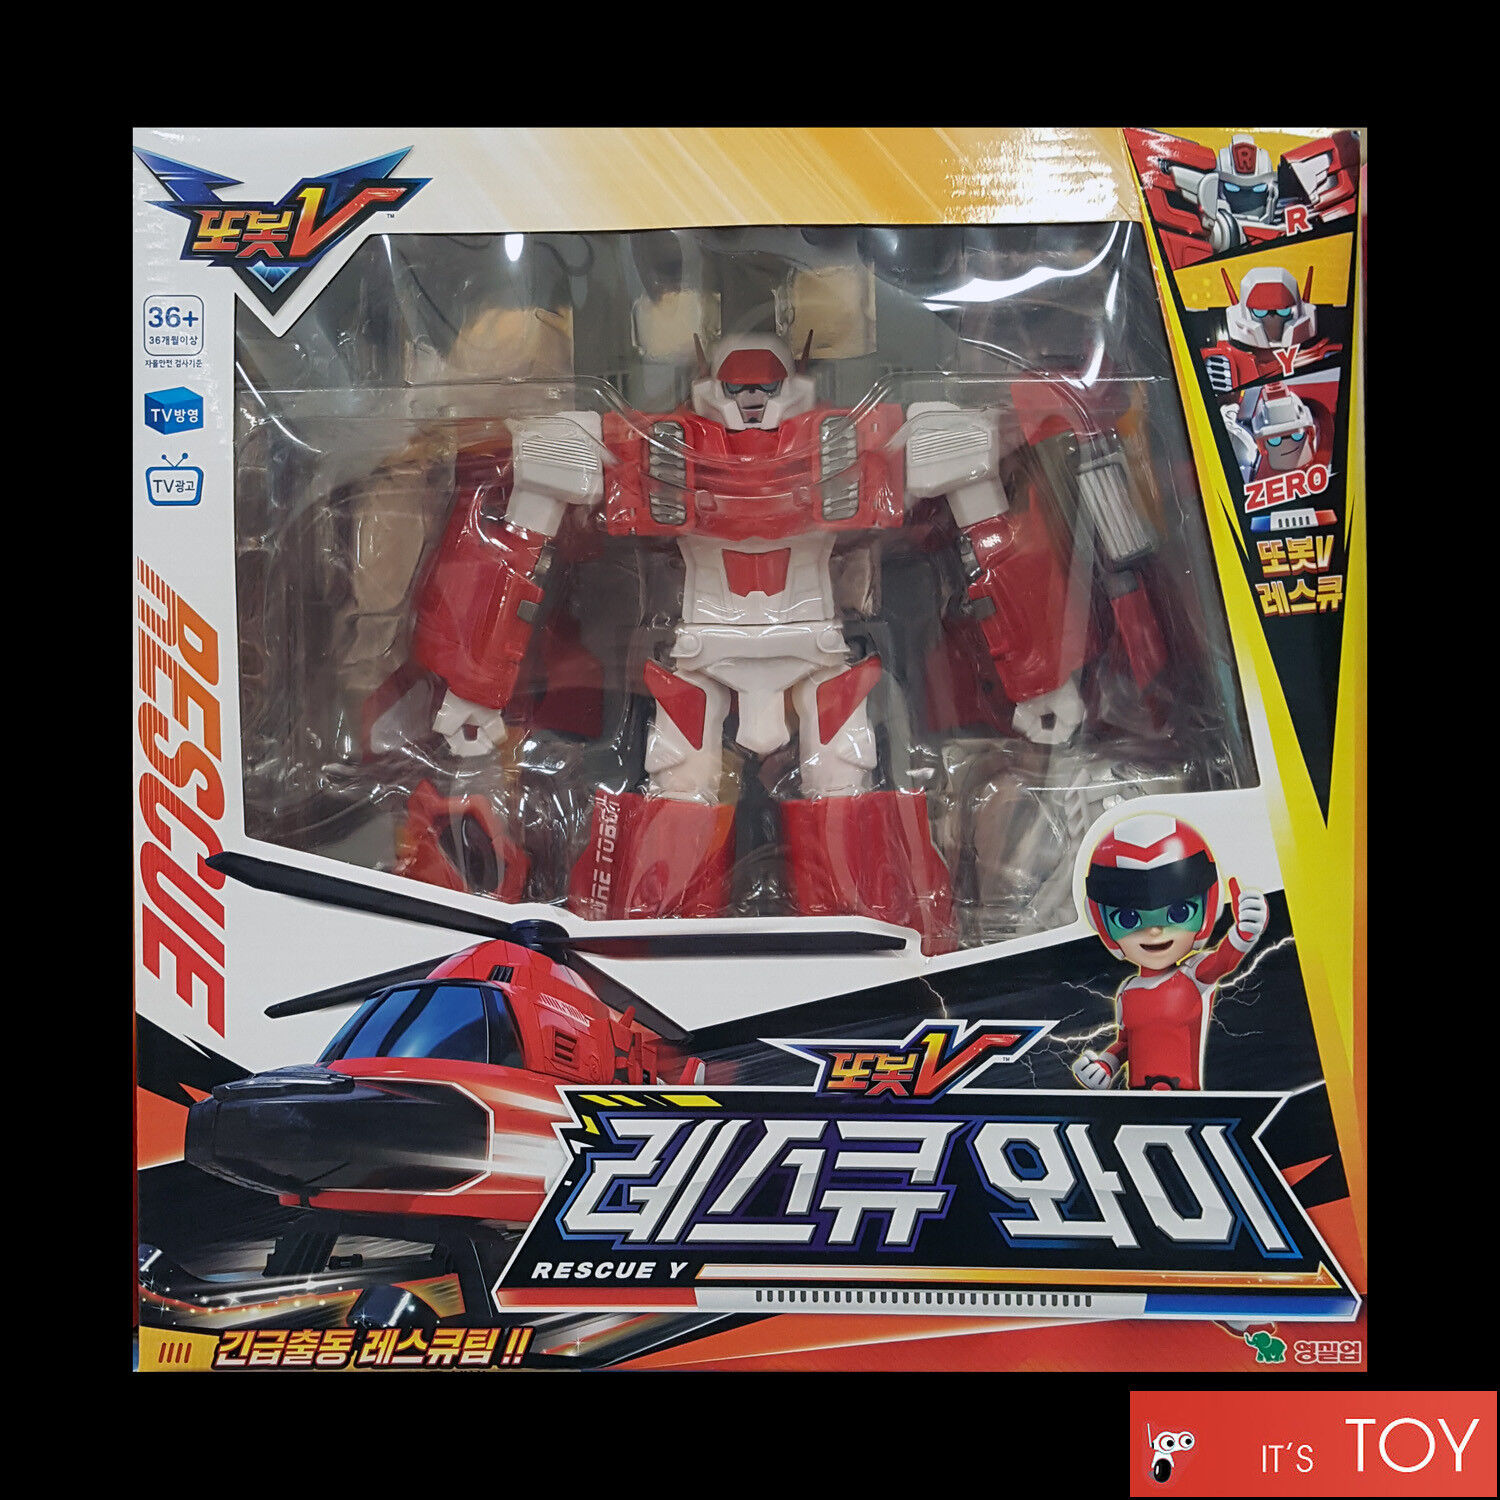 TOBOT V RESCUE Y Helicopter Transformer Transforming Robot Car Toy Tokey 2018